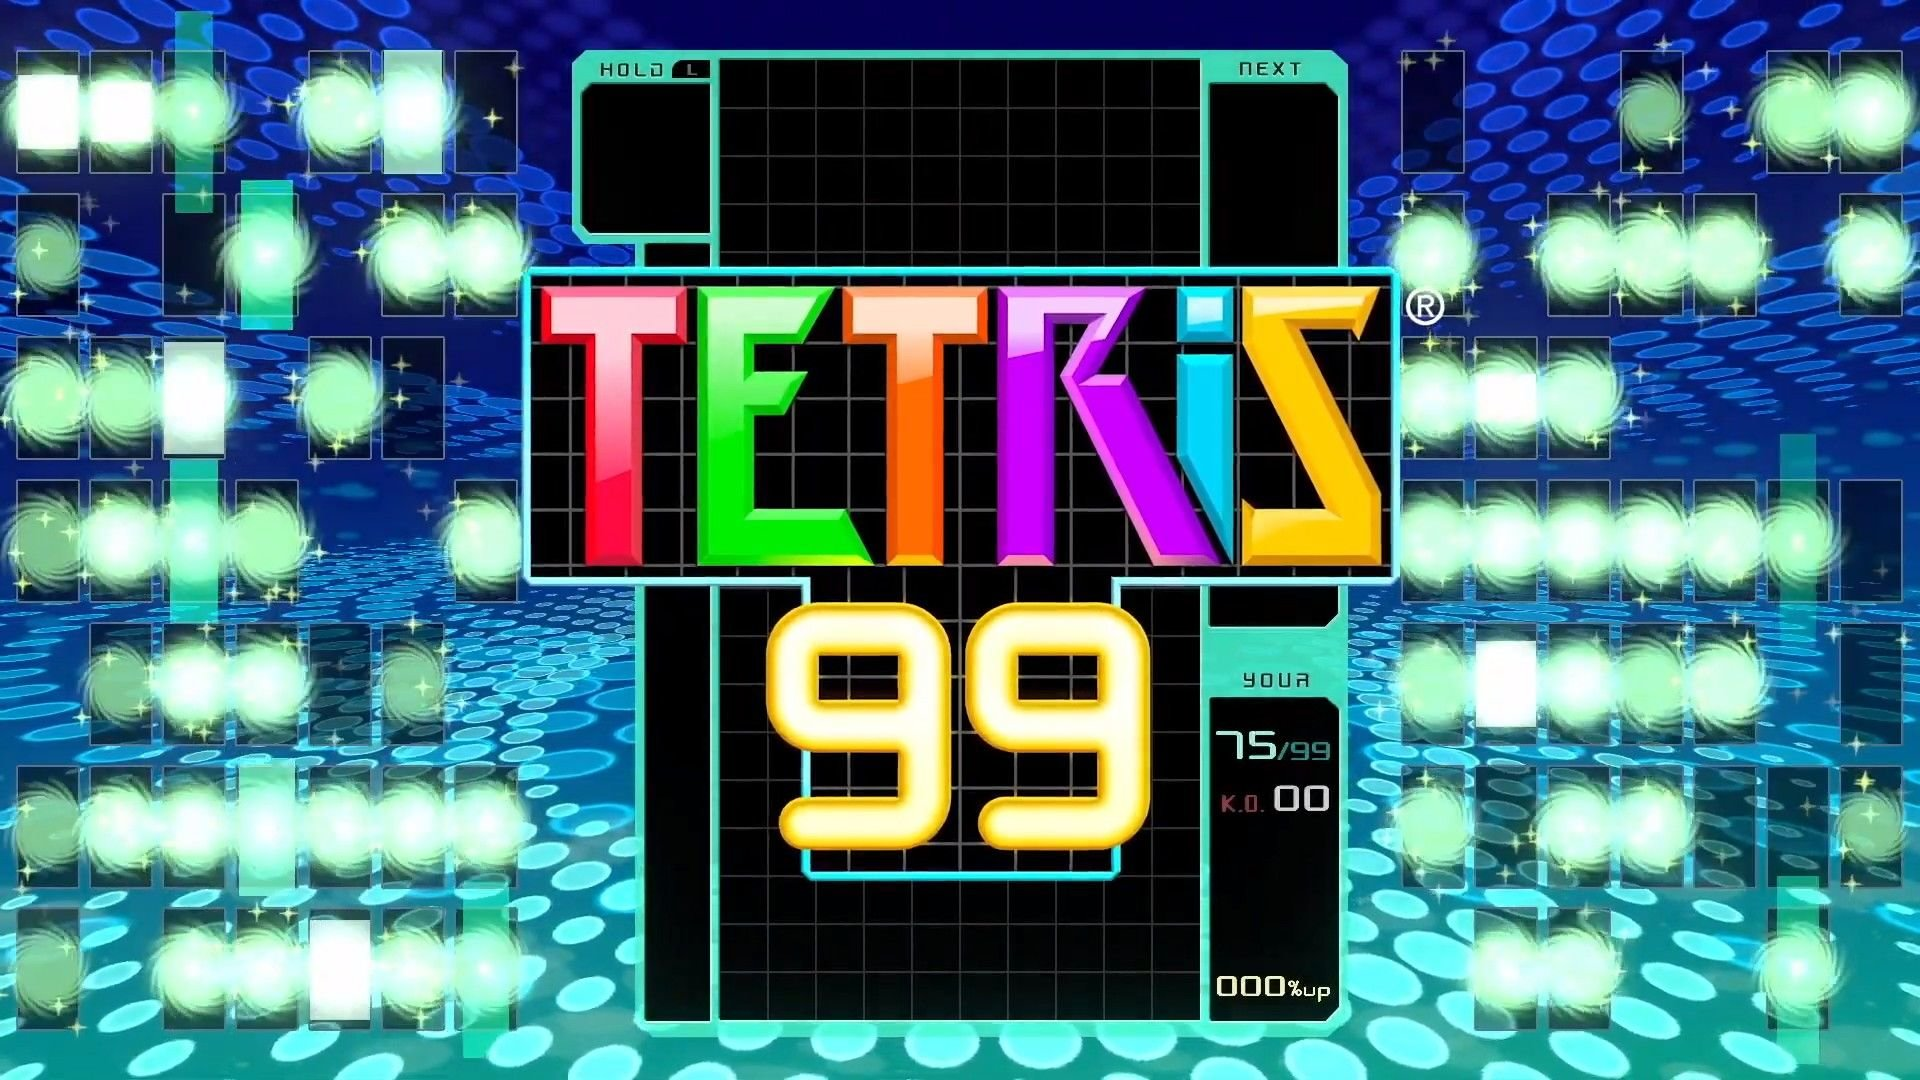 Tetris is now a battle royale game exclusive to Nintendo Switch 1920x1080